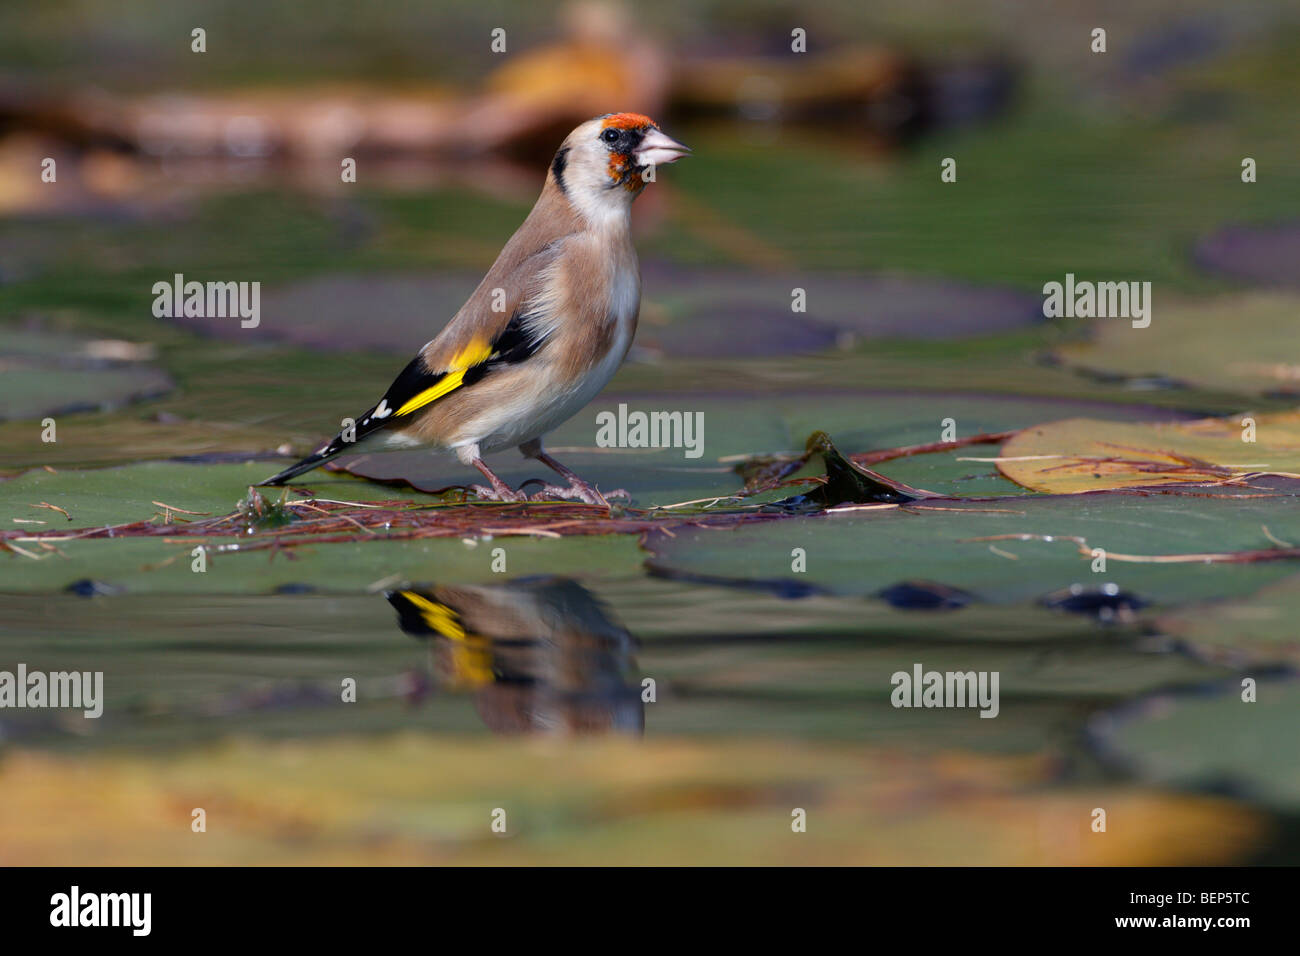 Goldfinch Carduelis carduelis lilly pad Photo Stock